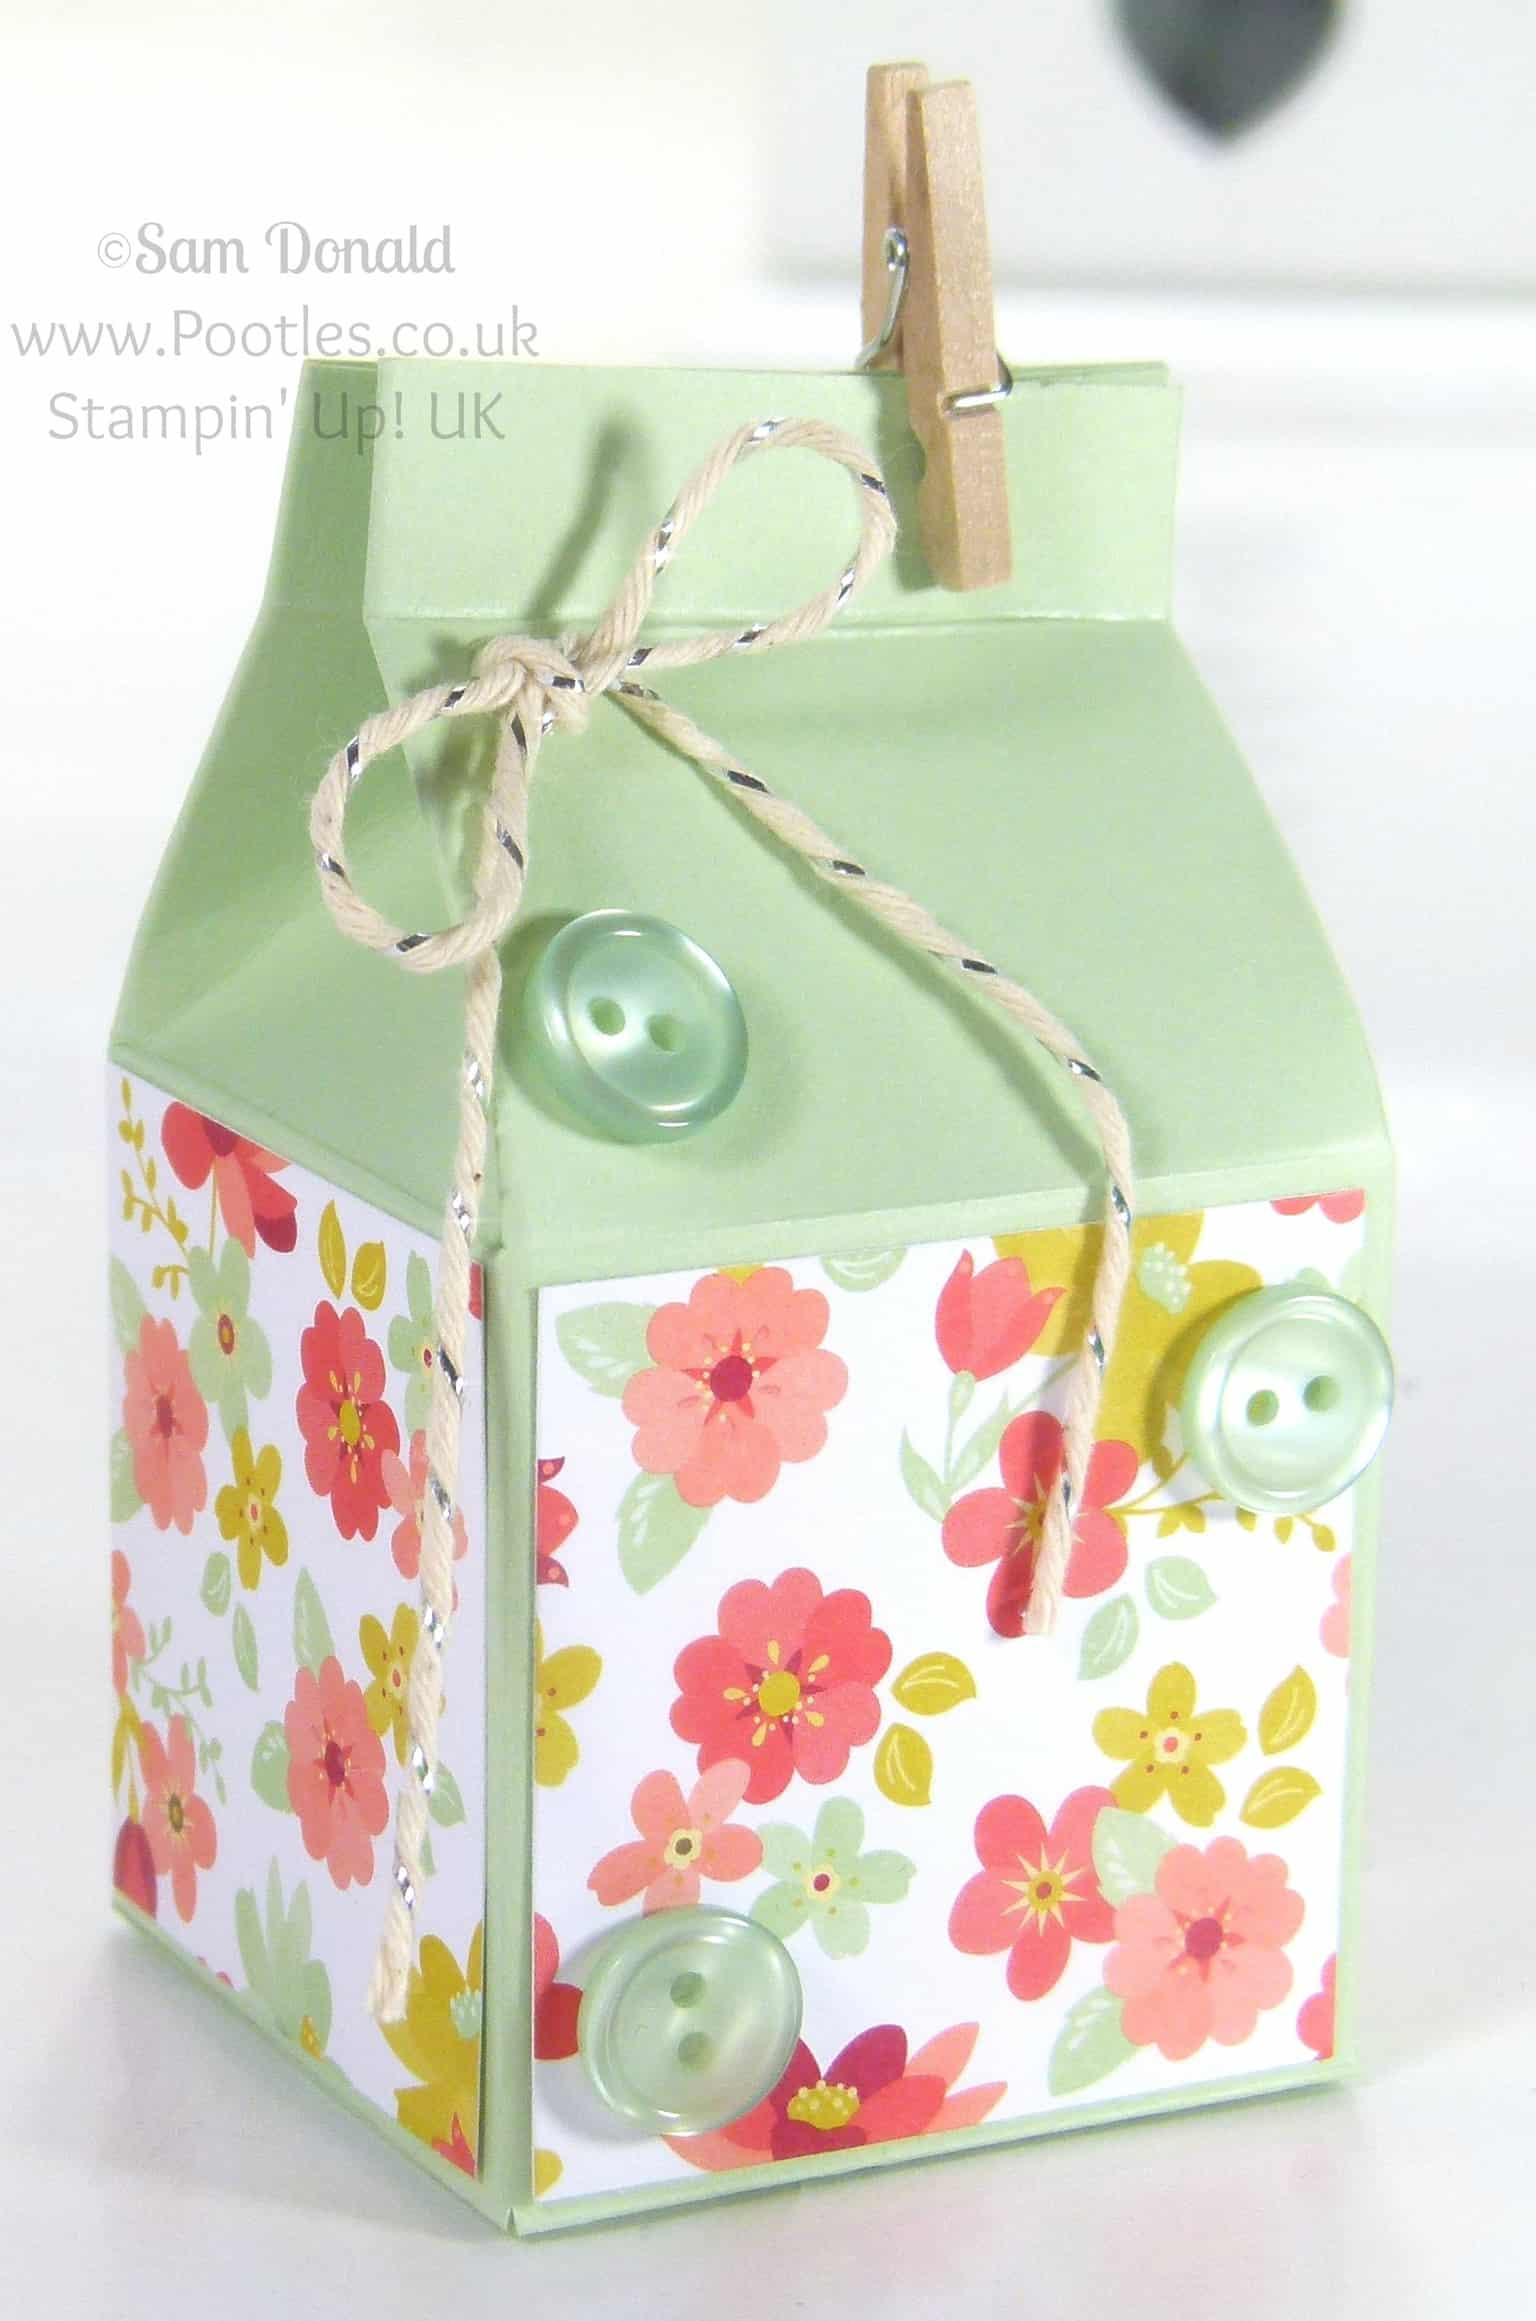 POOTLES Stampin' Up! UK Mini Hand Cut Milk Cartons Tutorial Mini Album Alternative